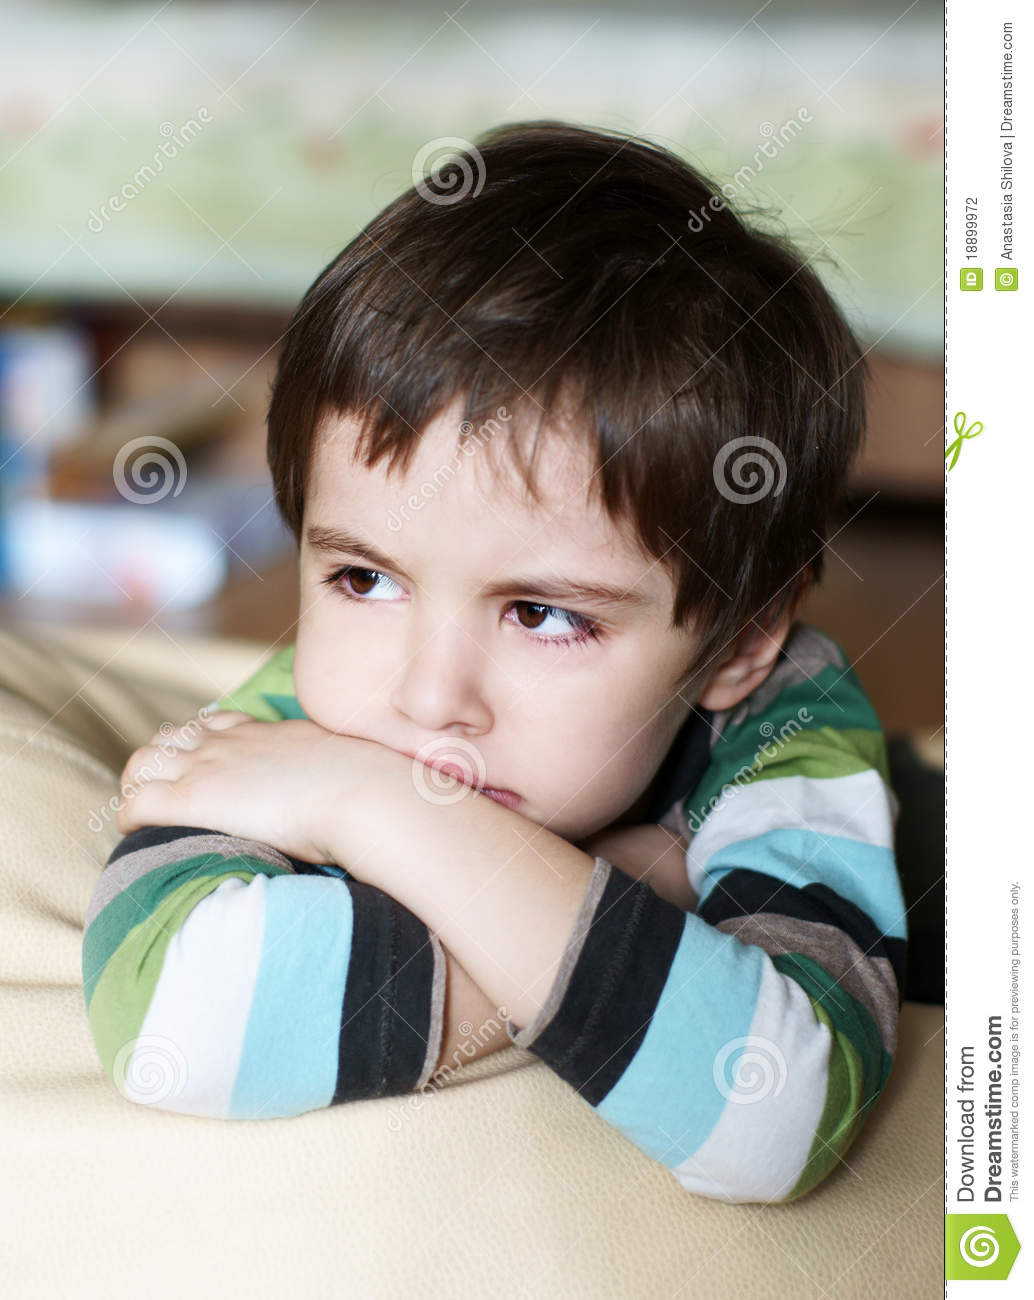 Kid Emotion Pictures